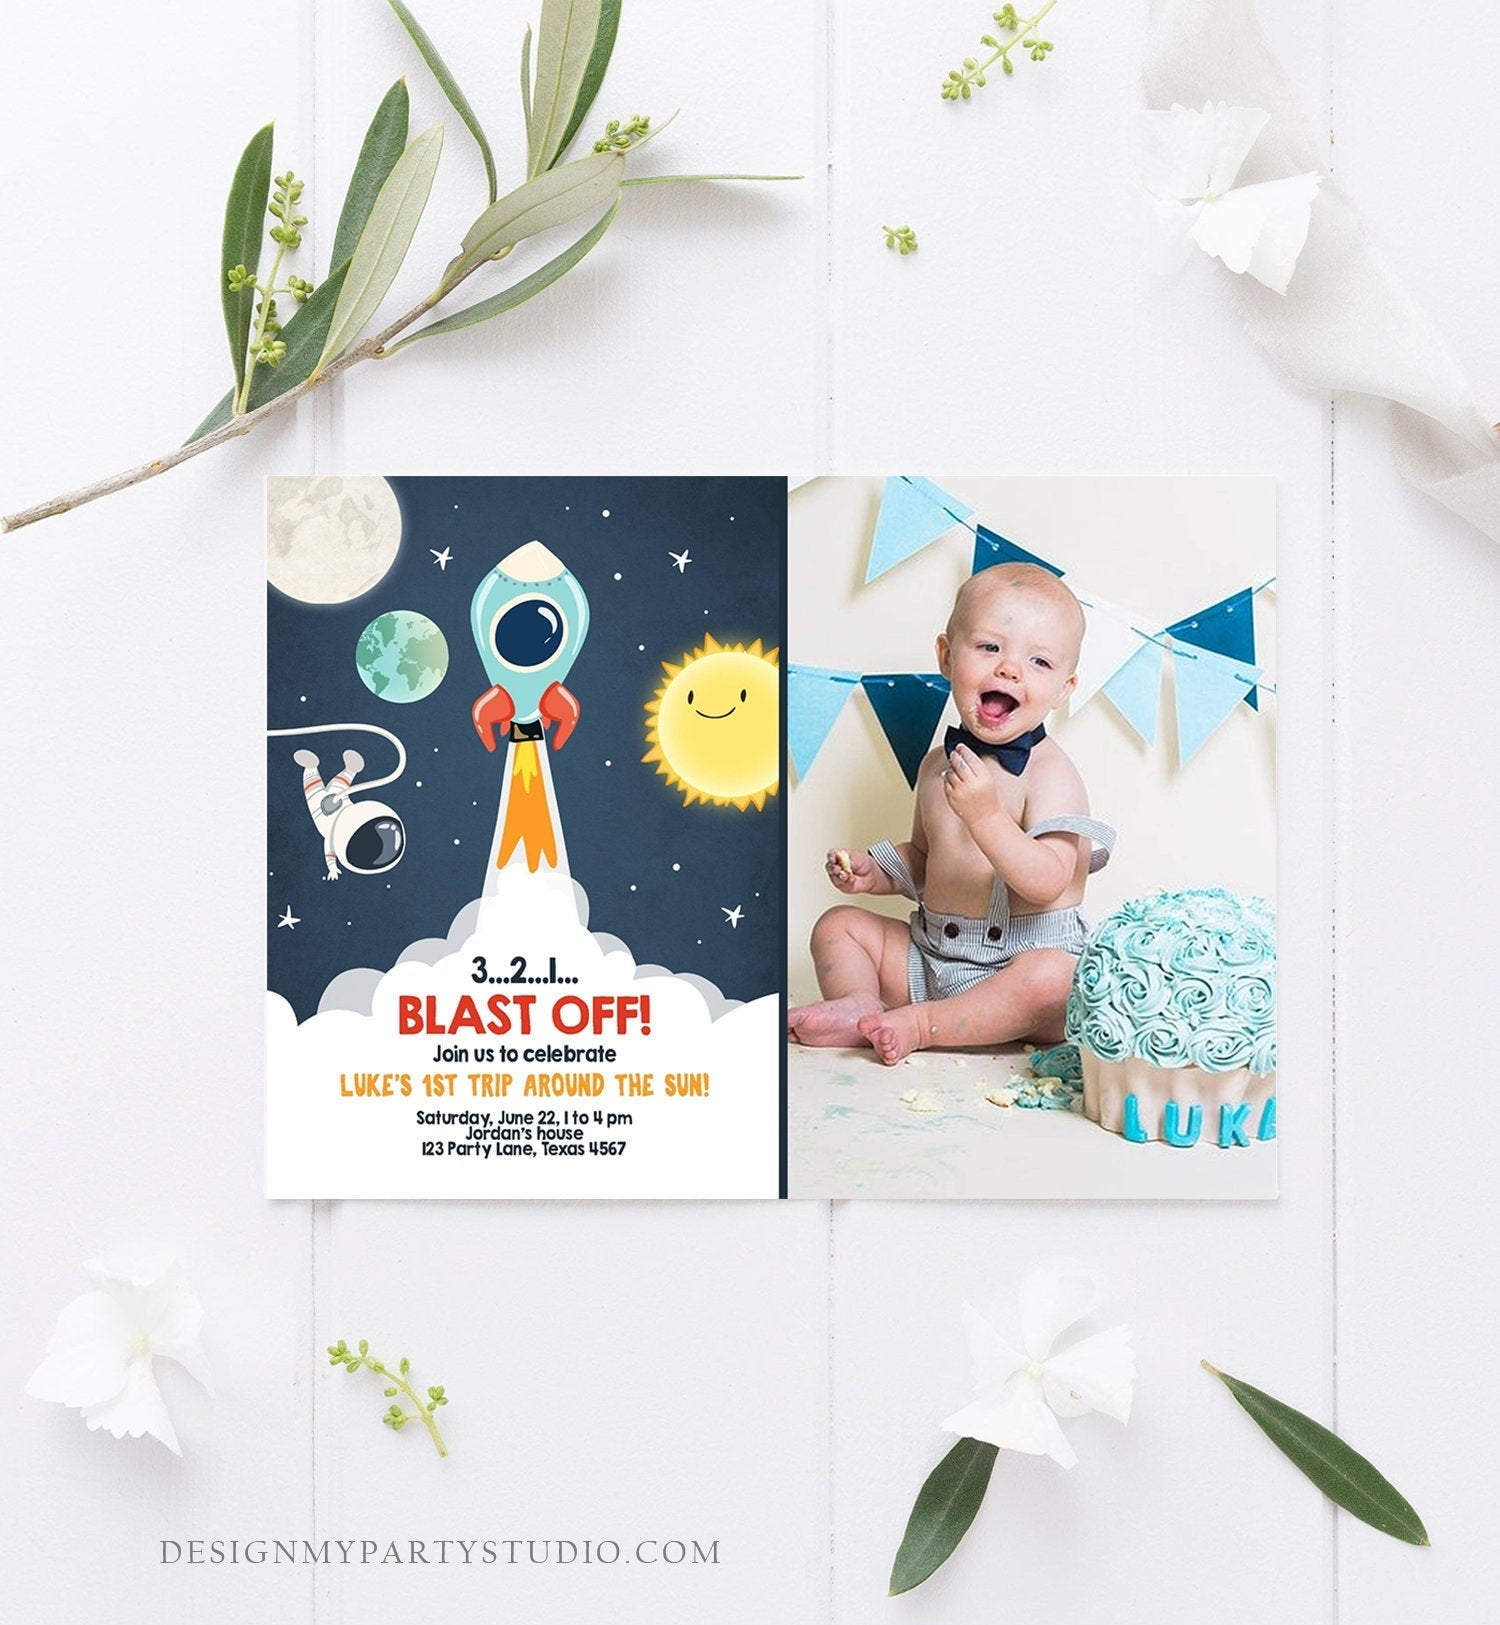 Editable Outer Space Birthday Invitation Rocket Astronaut Birthday Space Ship Blast Off Download Printable Template Digital Corjl 0046